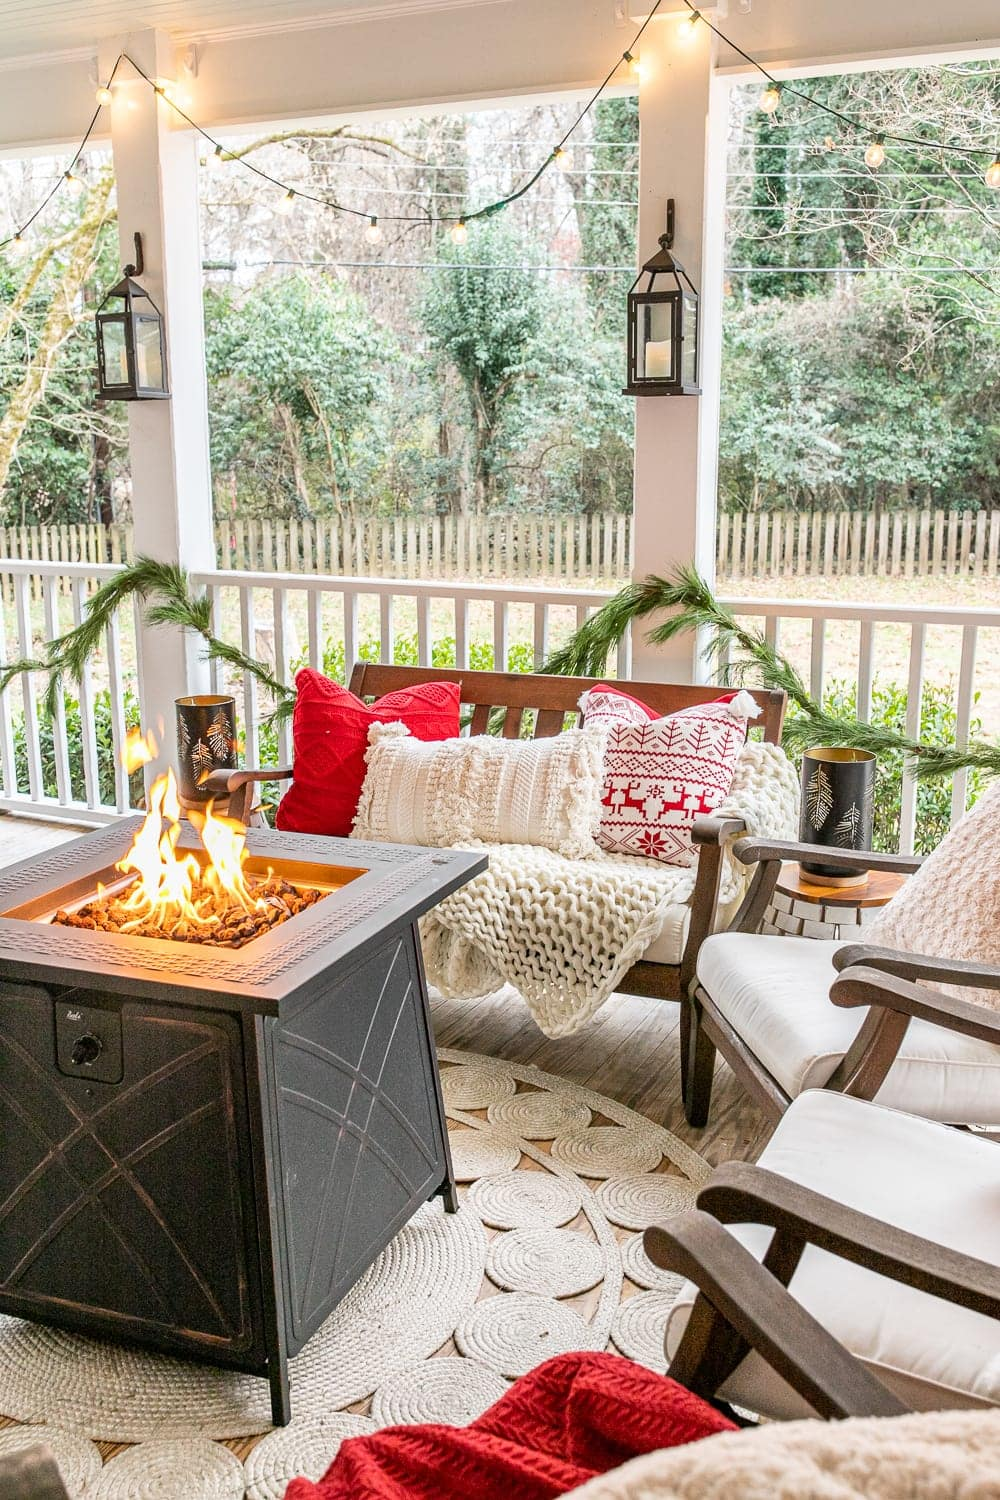 Cozy Christmas back porch with traditional red and green colors and cozy throw pillows and blankets